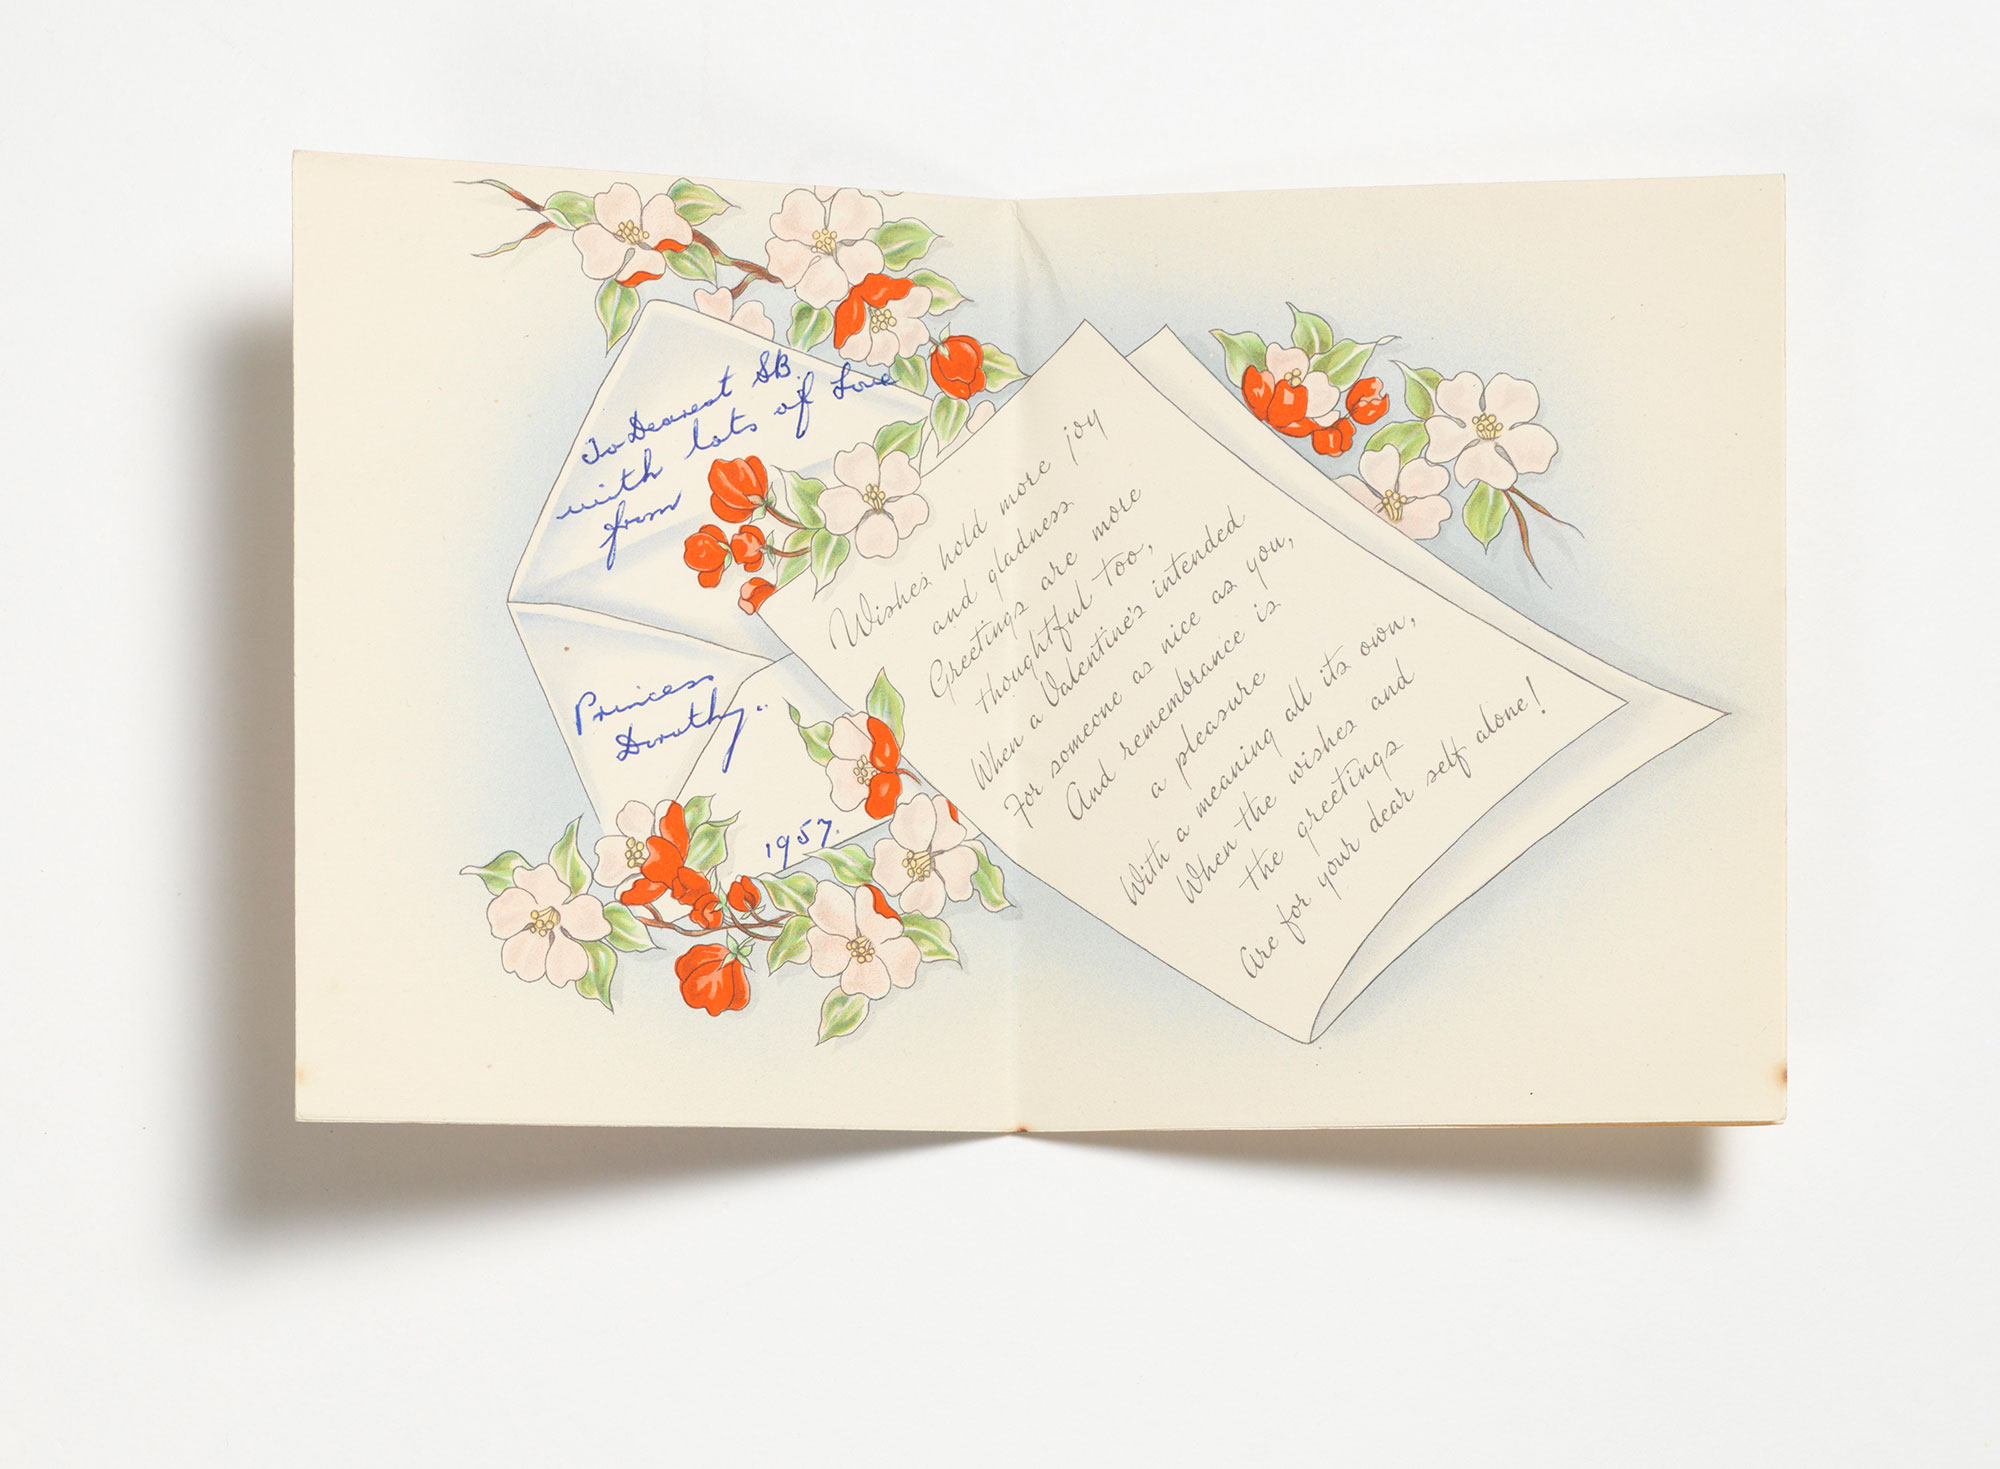 Inside of a Valentine's Day greeting card, with a romantic message on a graphic of a letter.